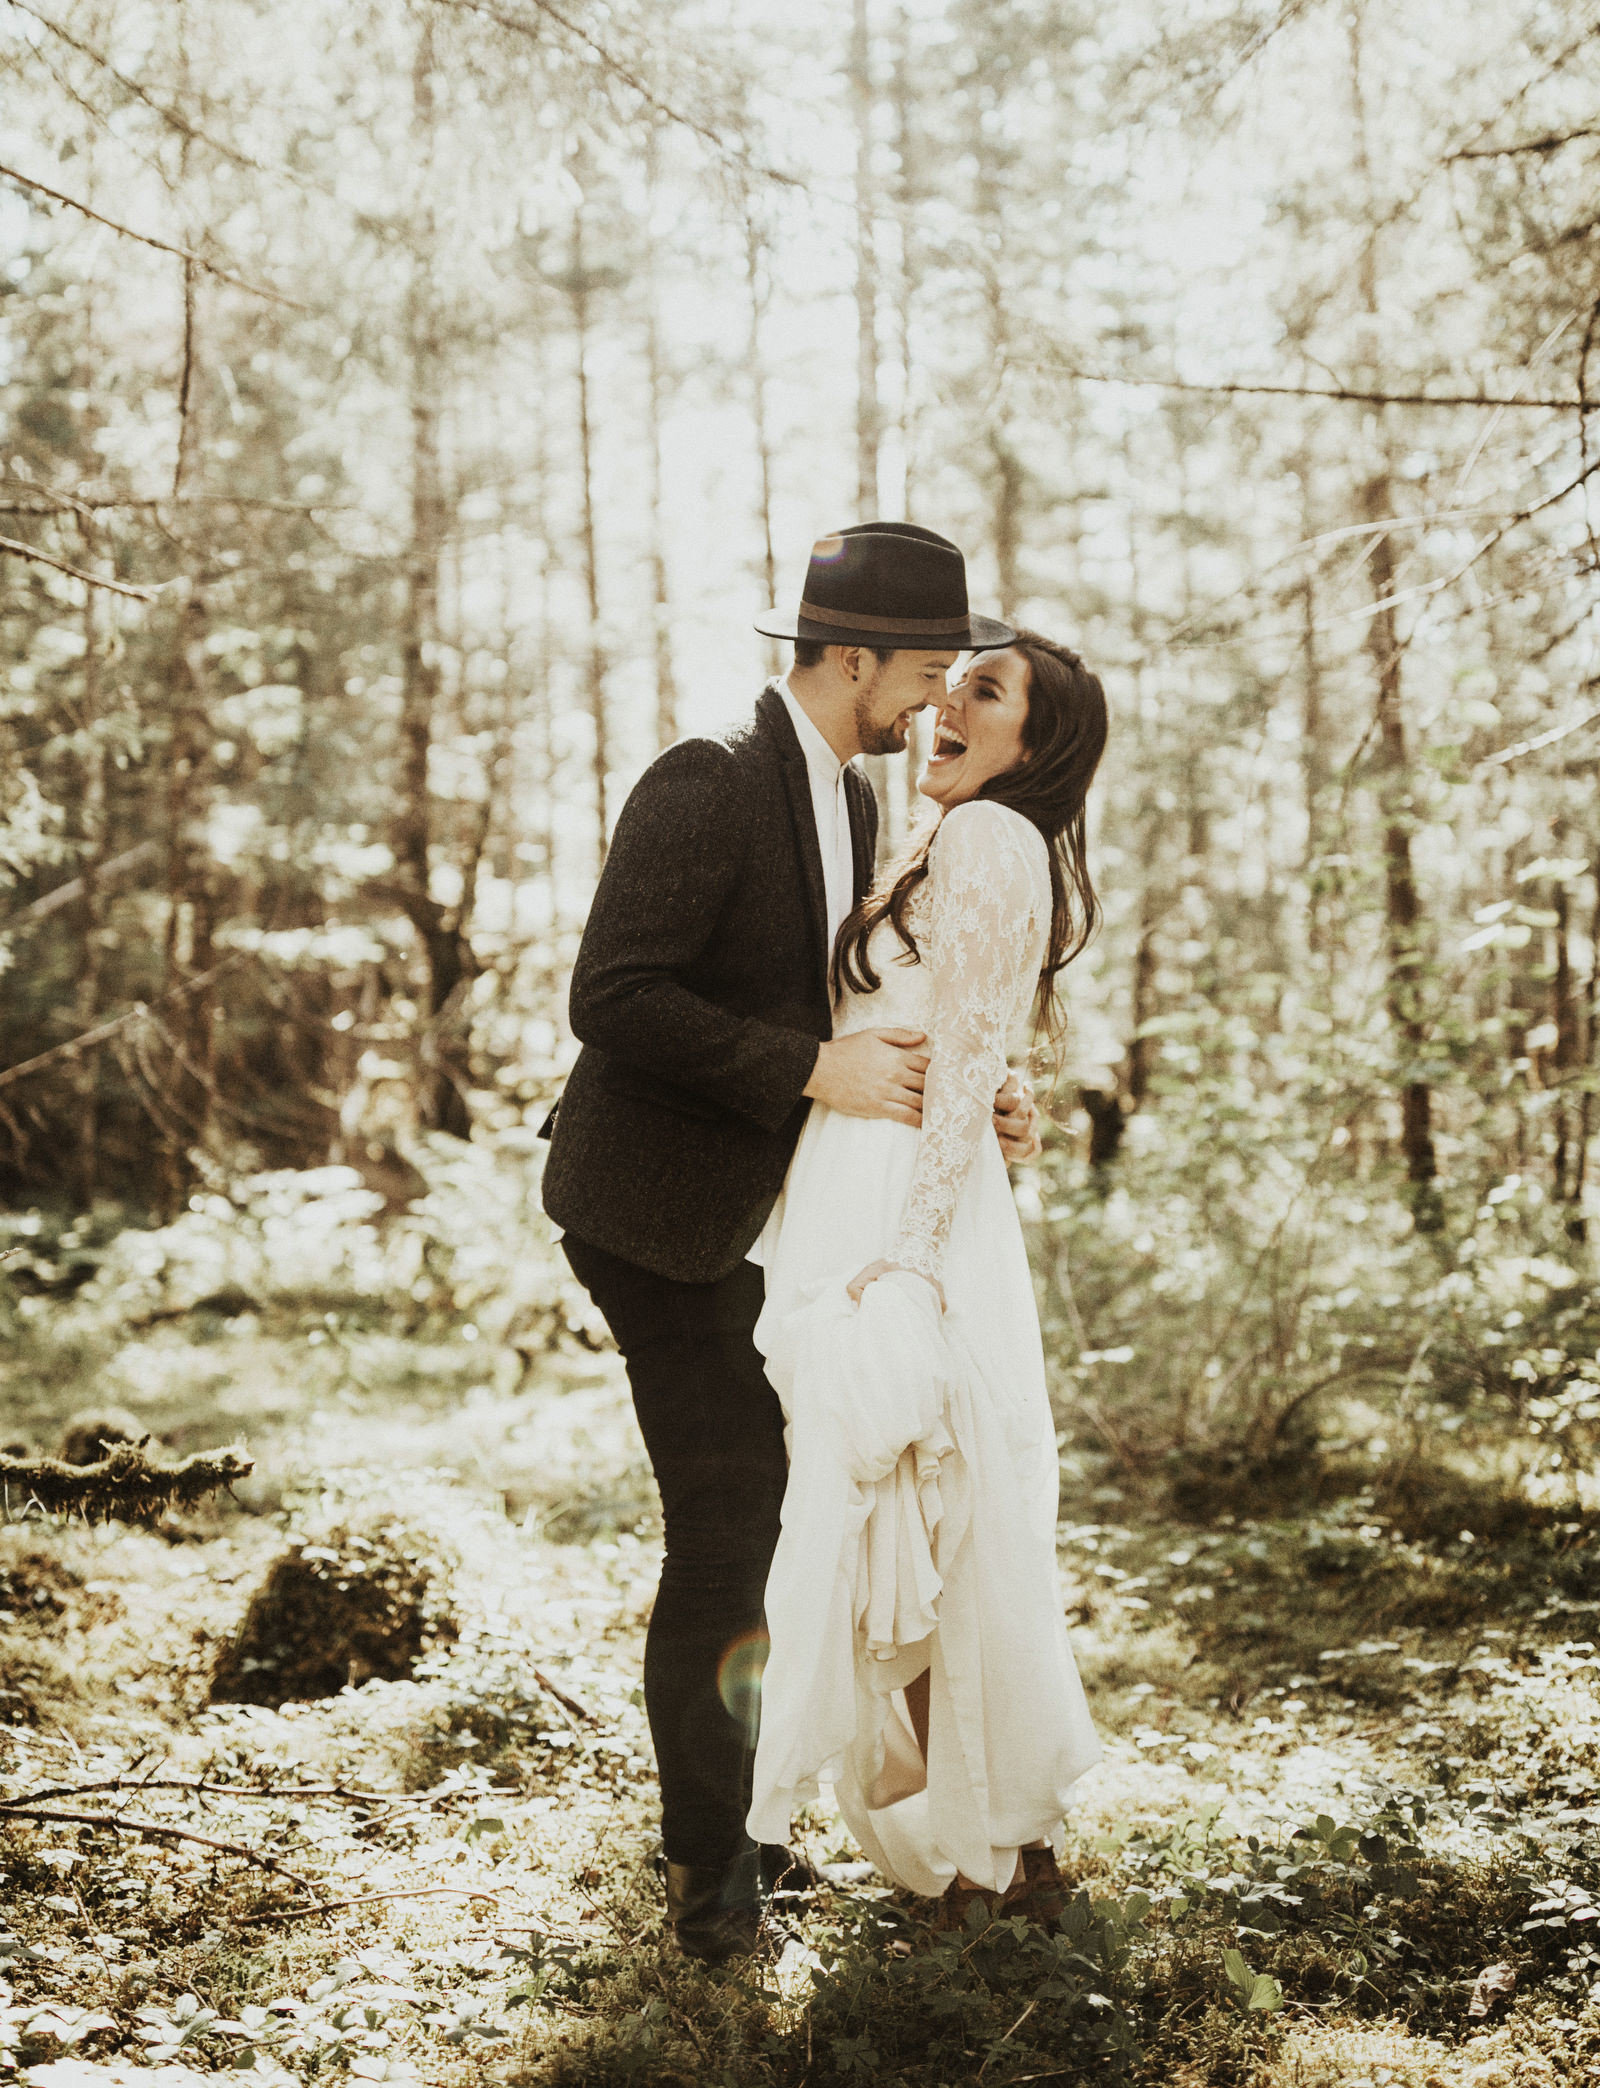 athena-and-camron-alaska-elopement-wedding-inspiration-india-earl-athena-grace-glacier-lagoon-wedding31